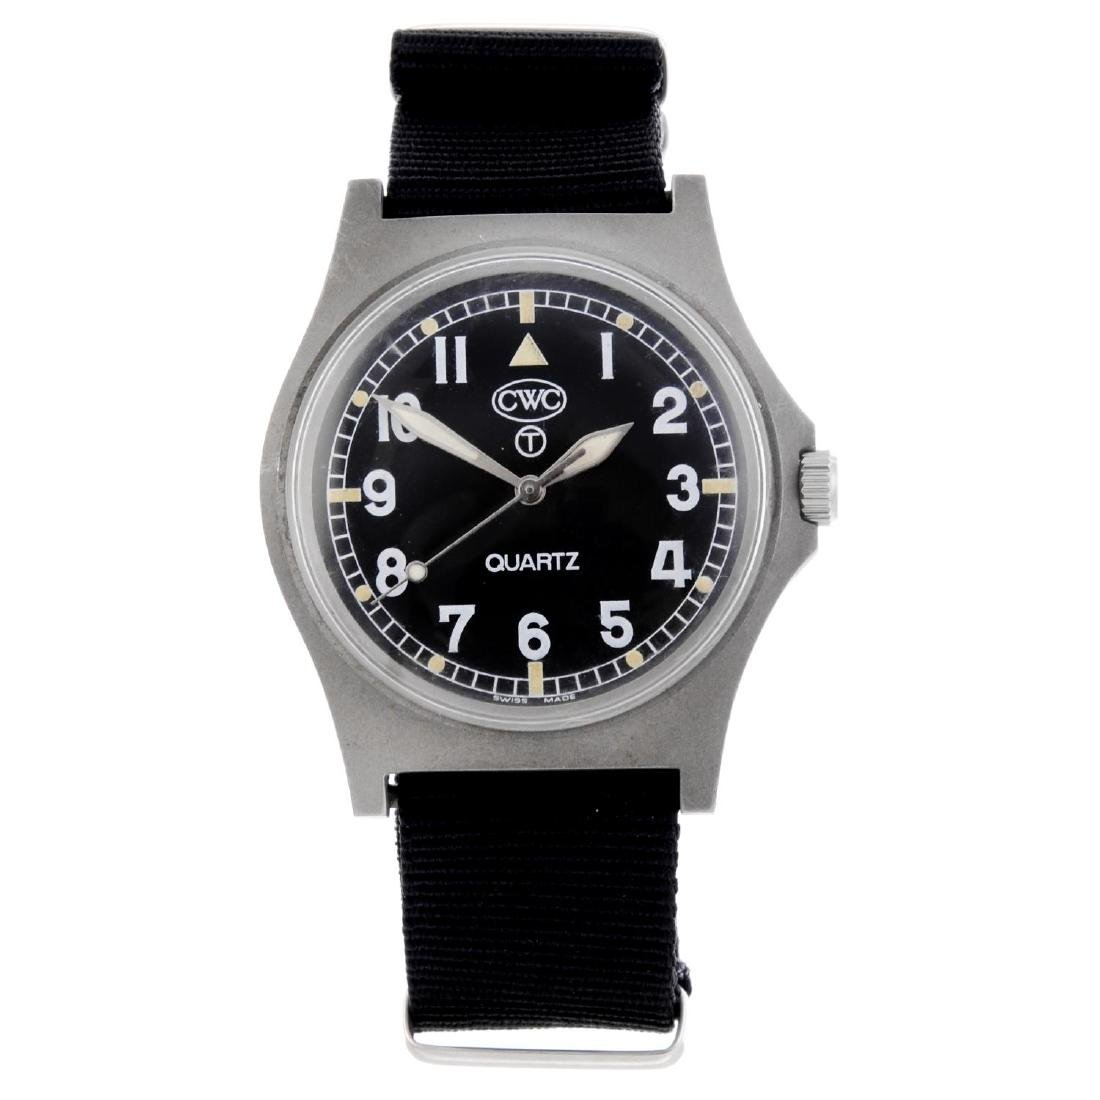 CWC - a military issue wrist watch. Stainless steel